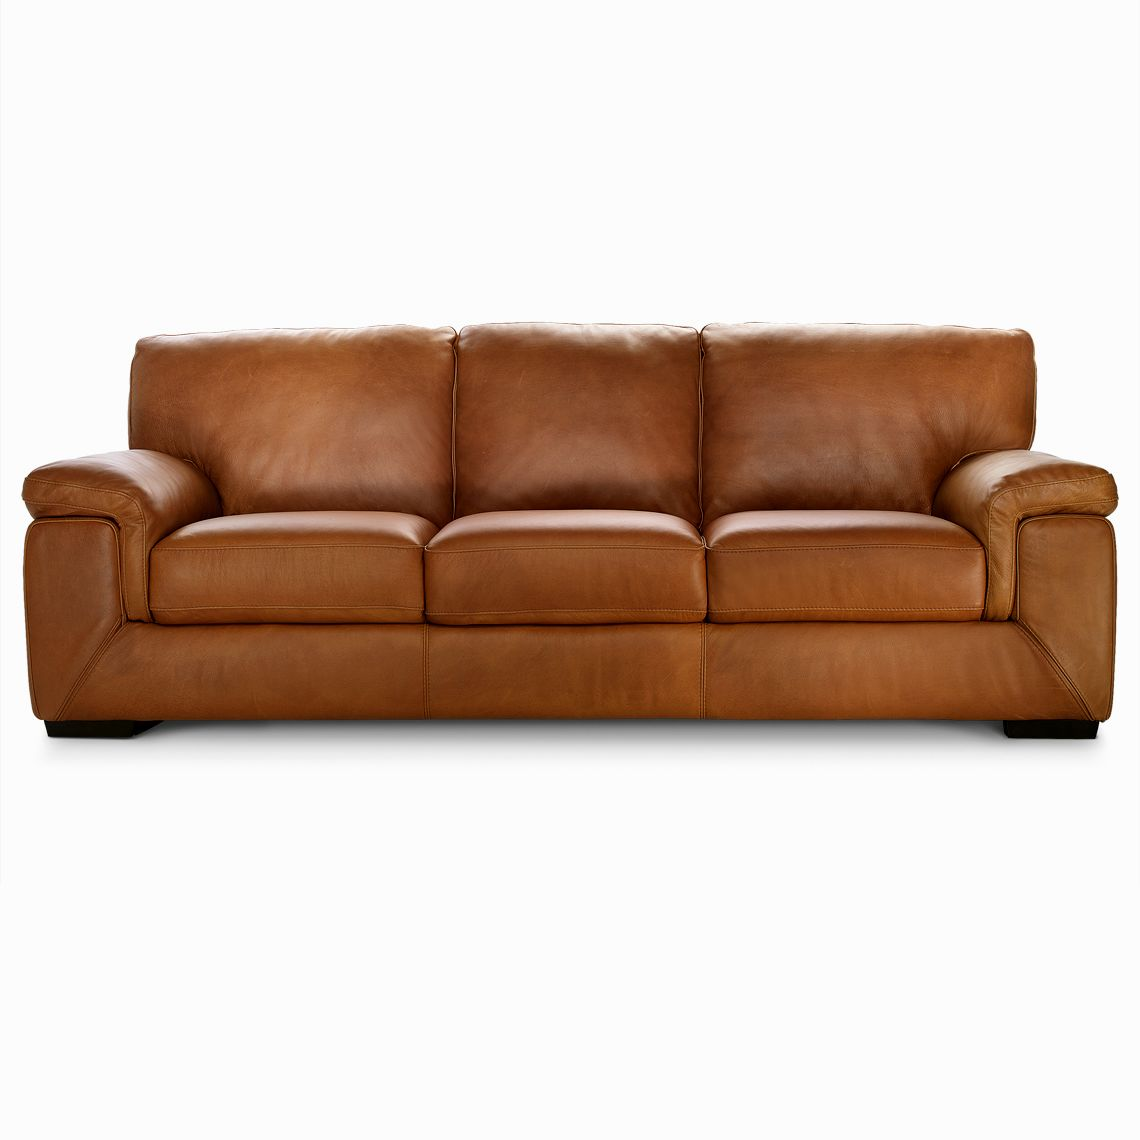 best sofa tables walmart online-Best sofa Tables Walmart Inspiration